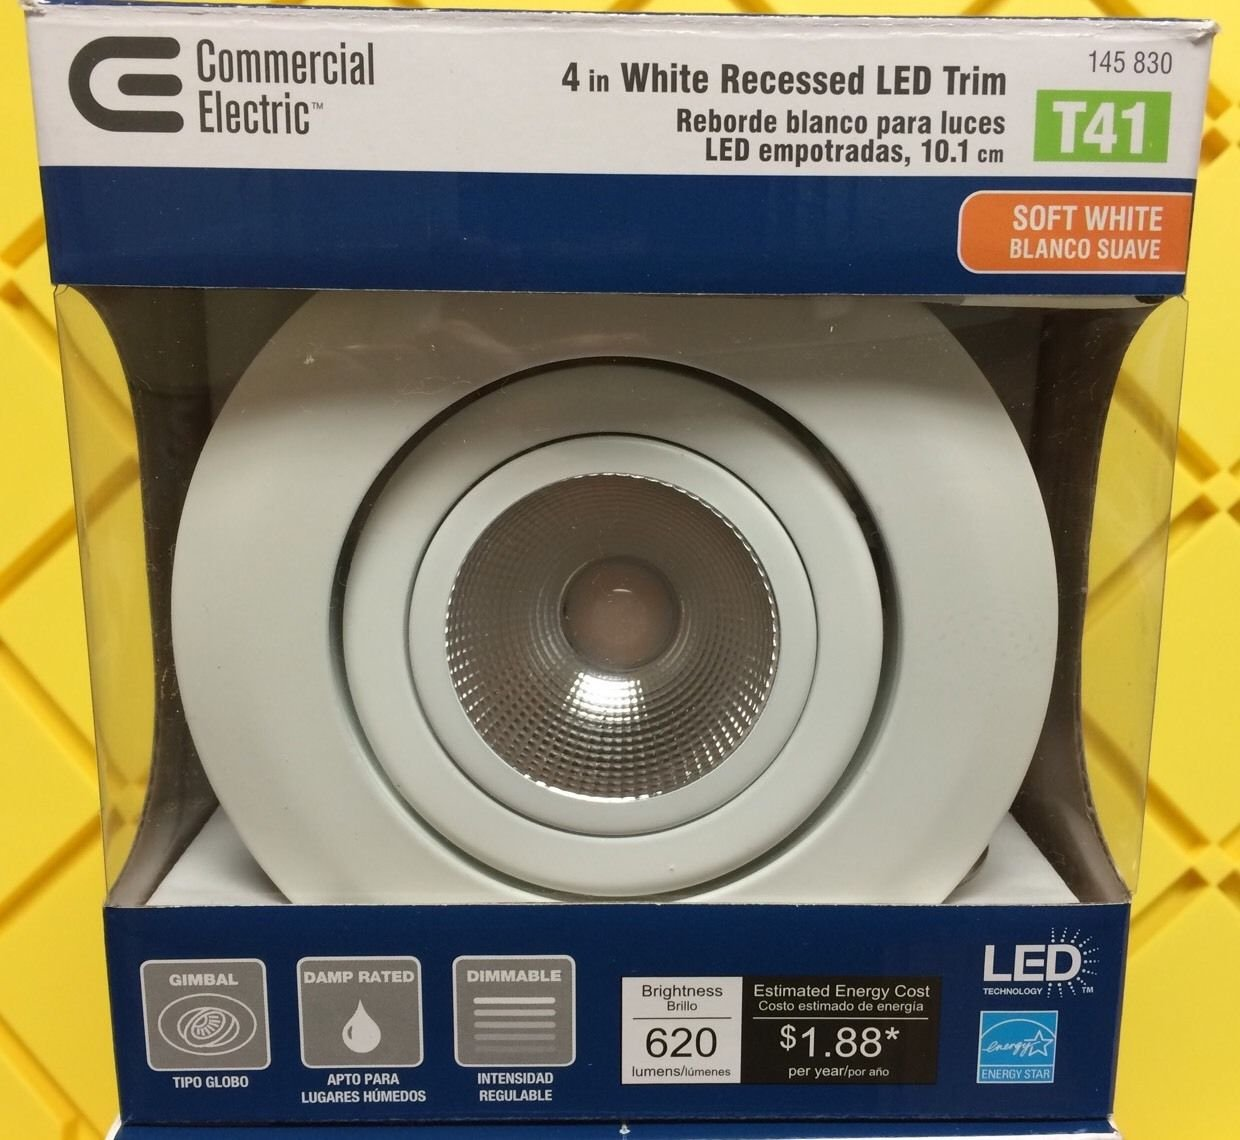 Amazon.com: 4 Pk LED Commercial Electric 4 in. Dimmable White Recessed Gimbal Light T41 --P#EWT43 65234R3FA529261: Home & Kitchen